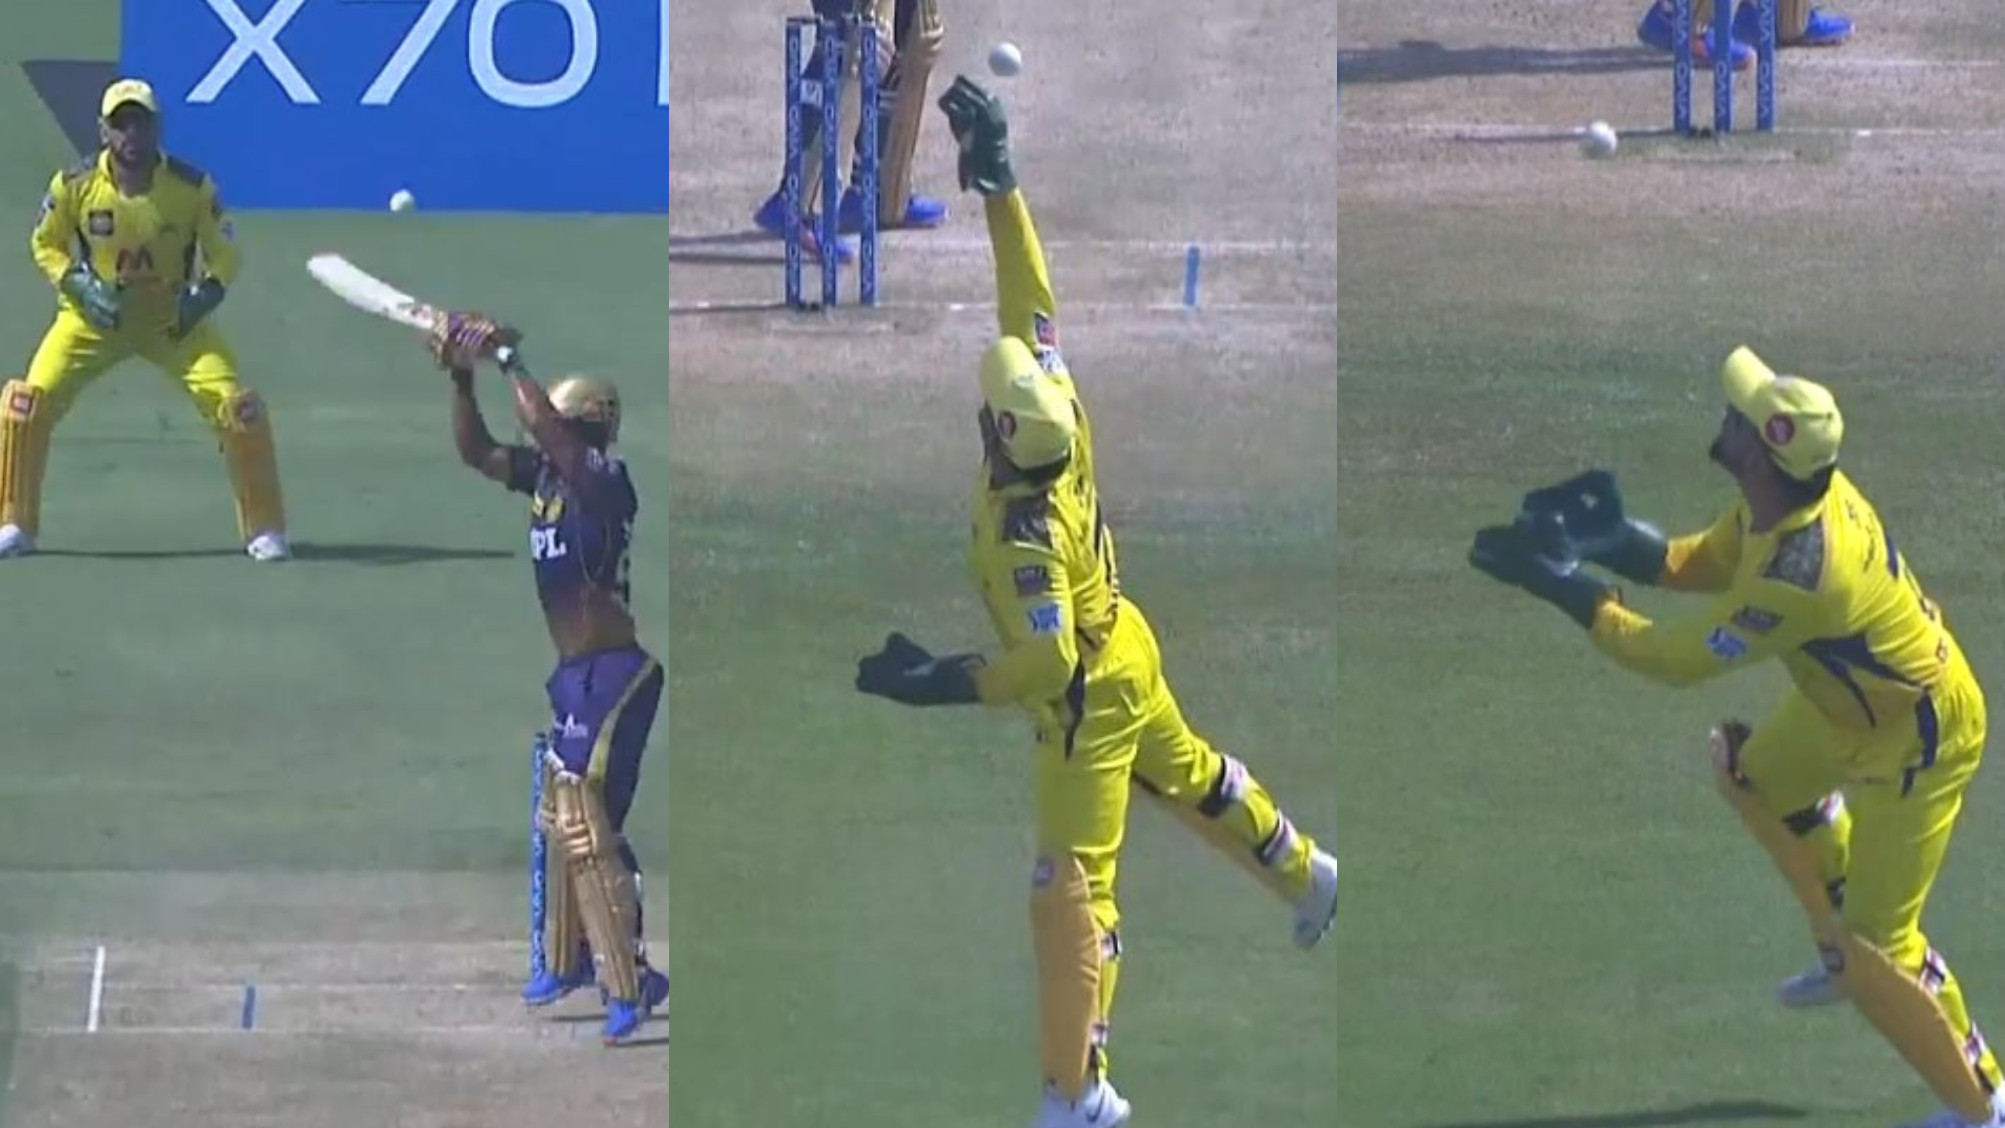 IPL 2021: WATCH- MS Dhoni takes a brilliant catch of Tripathi; no-ball leads to dismissal being reversed